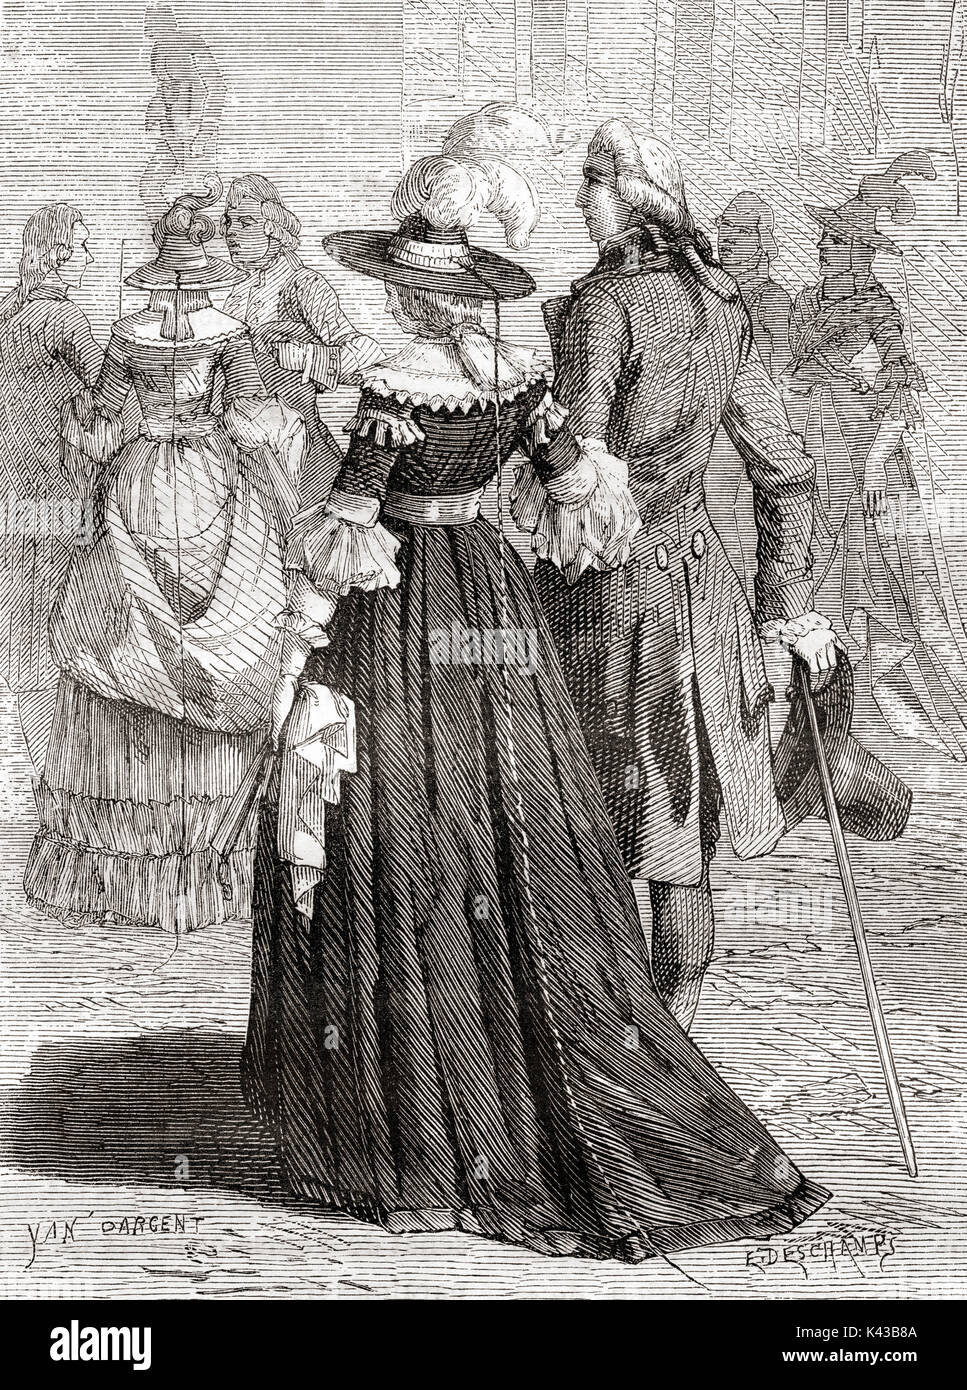 Parisien ladies wearing lightning rod hats, a fad in late eighteenth-century Europe, particularly Paris. The concept that inspired the fashion was that a lightning bolt would strike the protective device instead of the person, and the electricity would travel down a small metal chain into the ground harmlessly.   From Les Merveilles de la Science, published 1870. - Stock Image